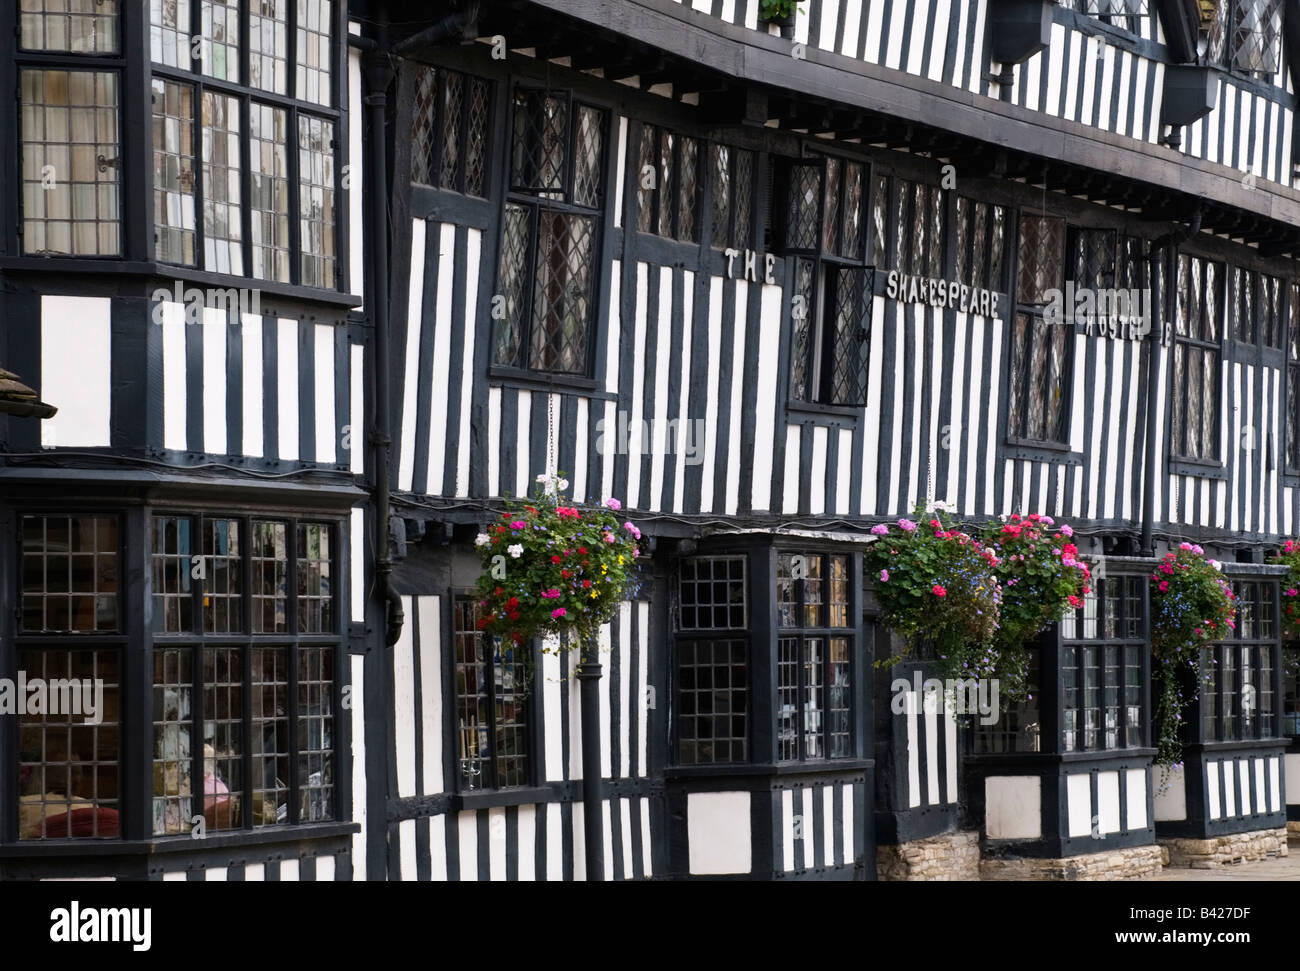 Tudor exterior of the famous Shakespeare Hotel in Stratford Upon Avon - Stock Image